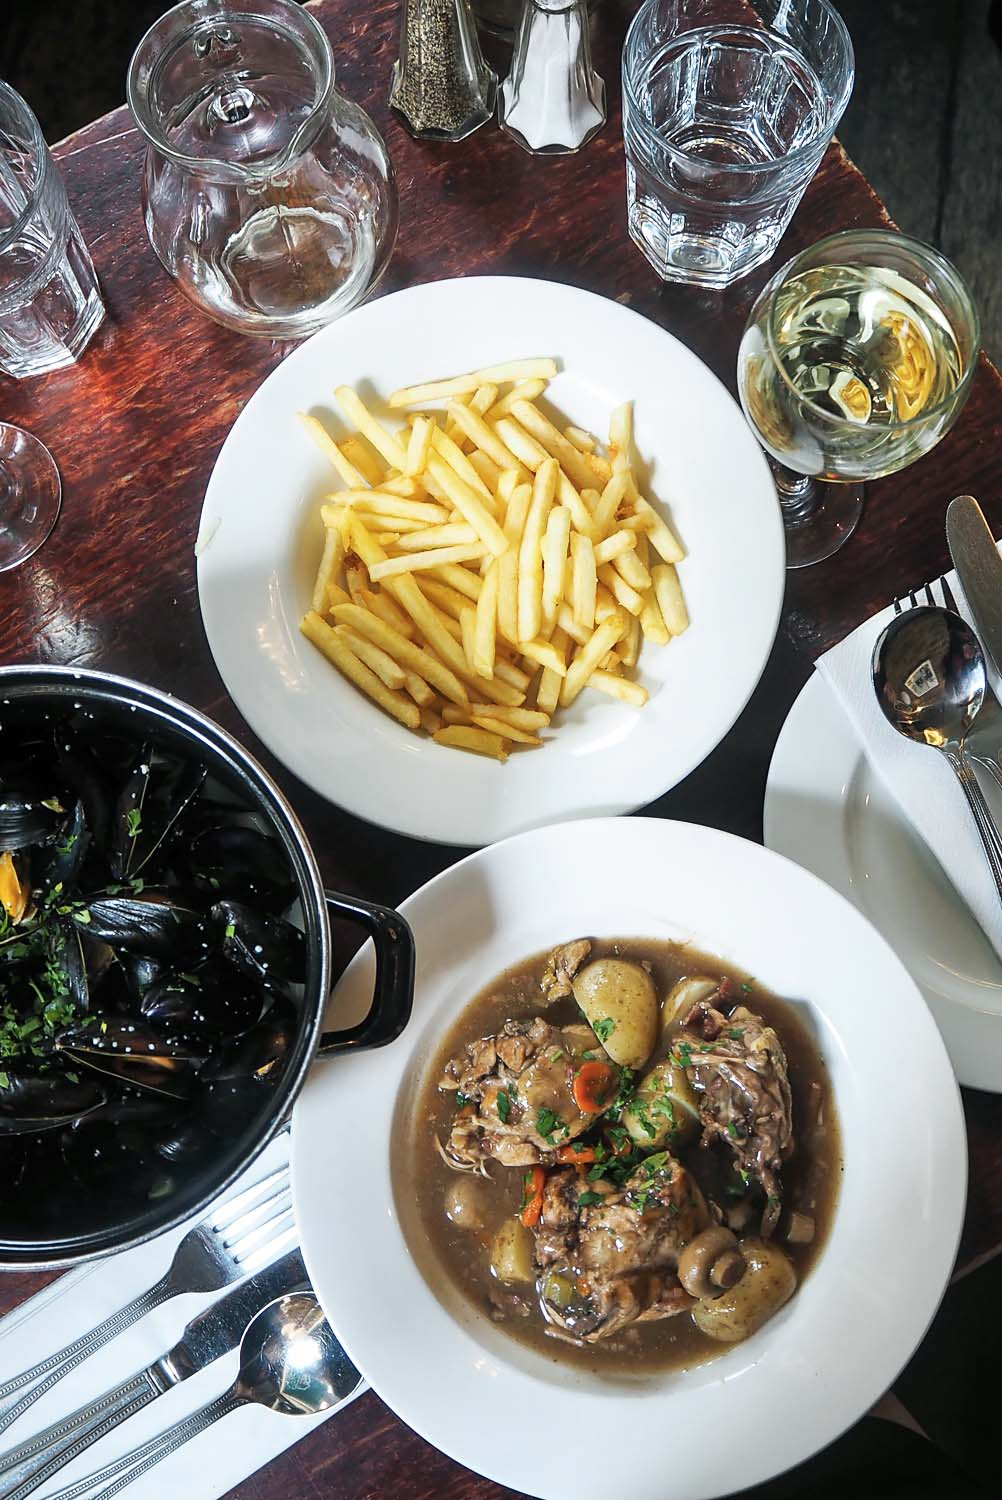 Moules Frites and Coq au Vin | French Dining at Le Garrick restaurant in Covent Garden, London